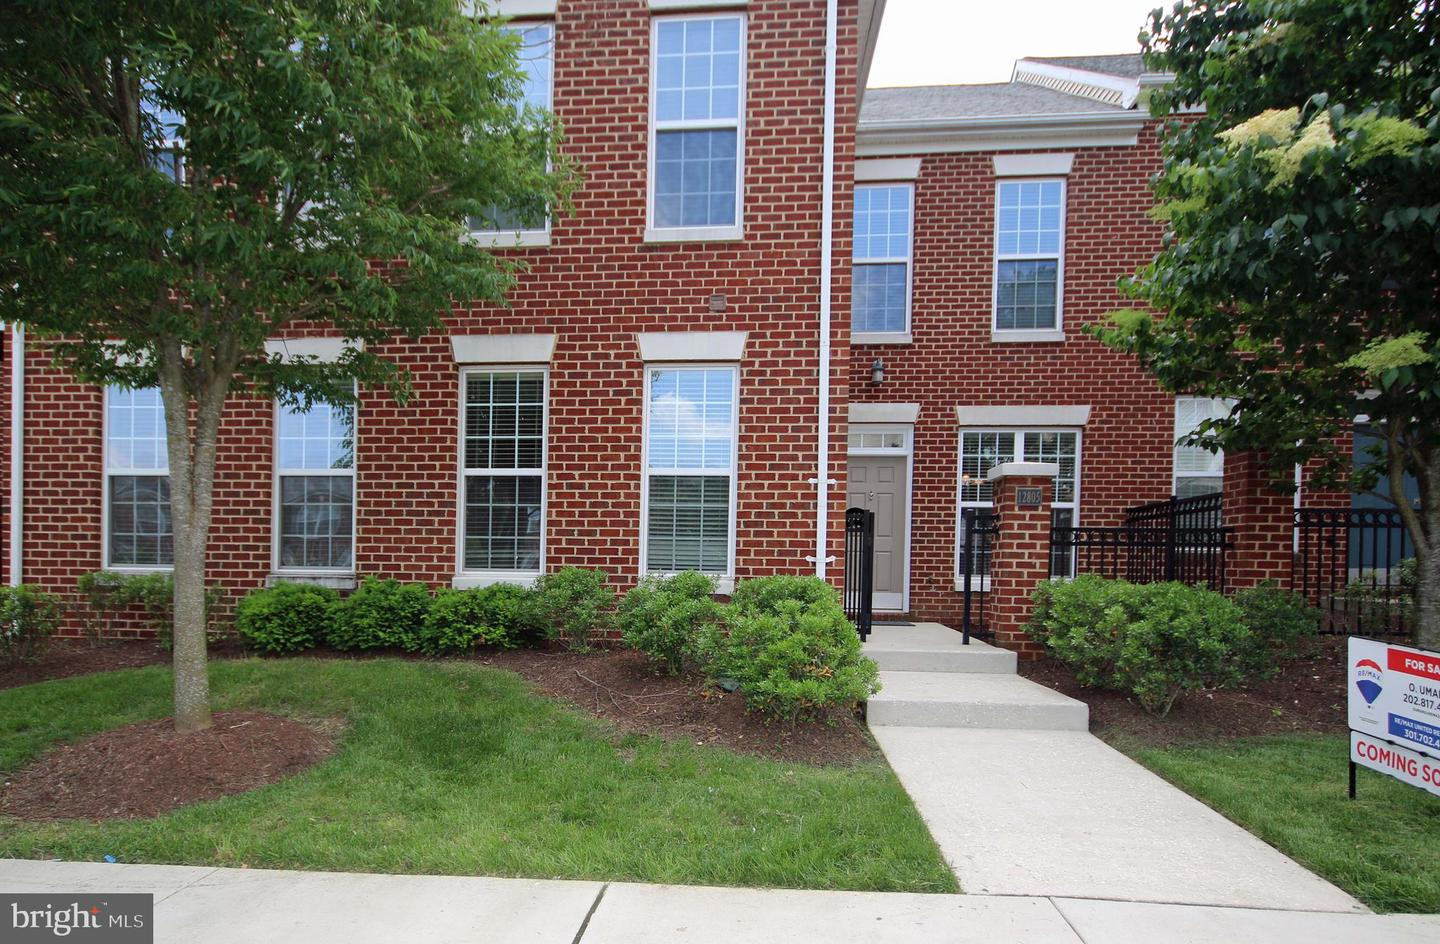 12805 LIBERTYS DELIGHT DRIVE, BOWIE, Maryland